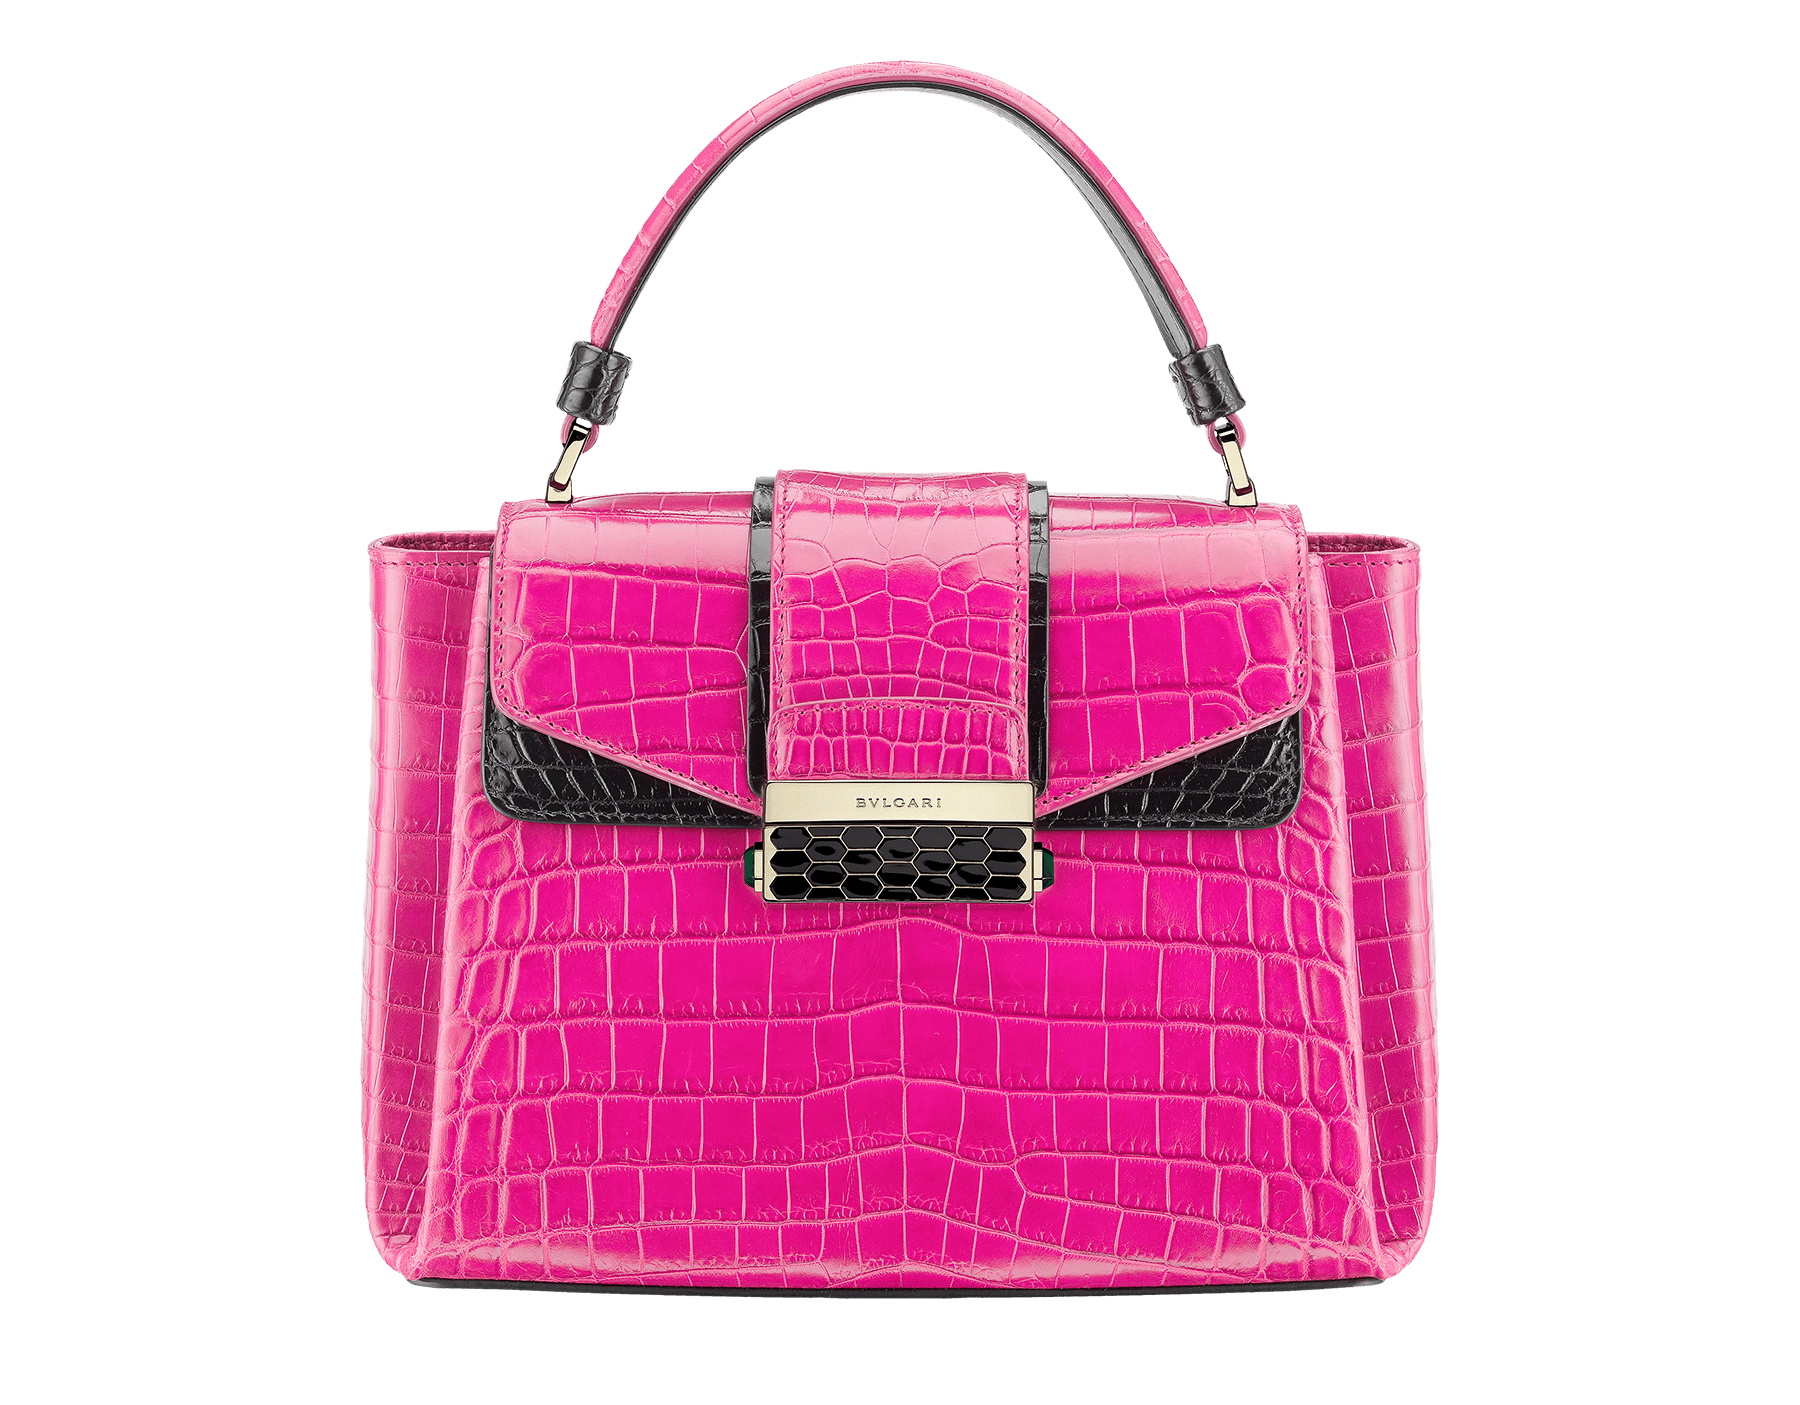 Top handle bag Serpenti Viper in pink spinel and black shiny crocodile skin. 283336 image 1